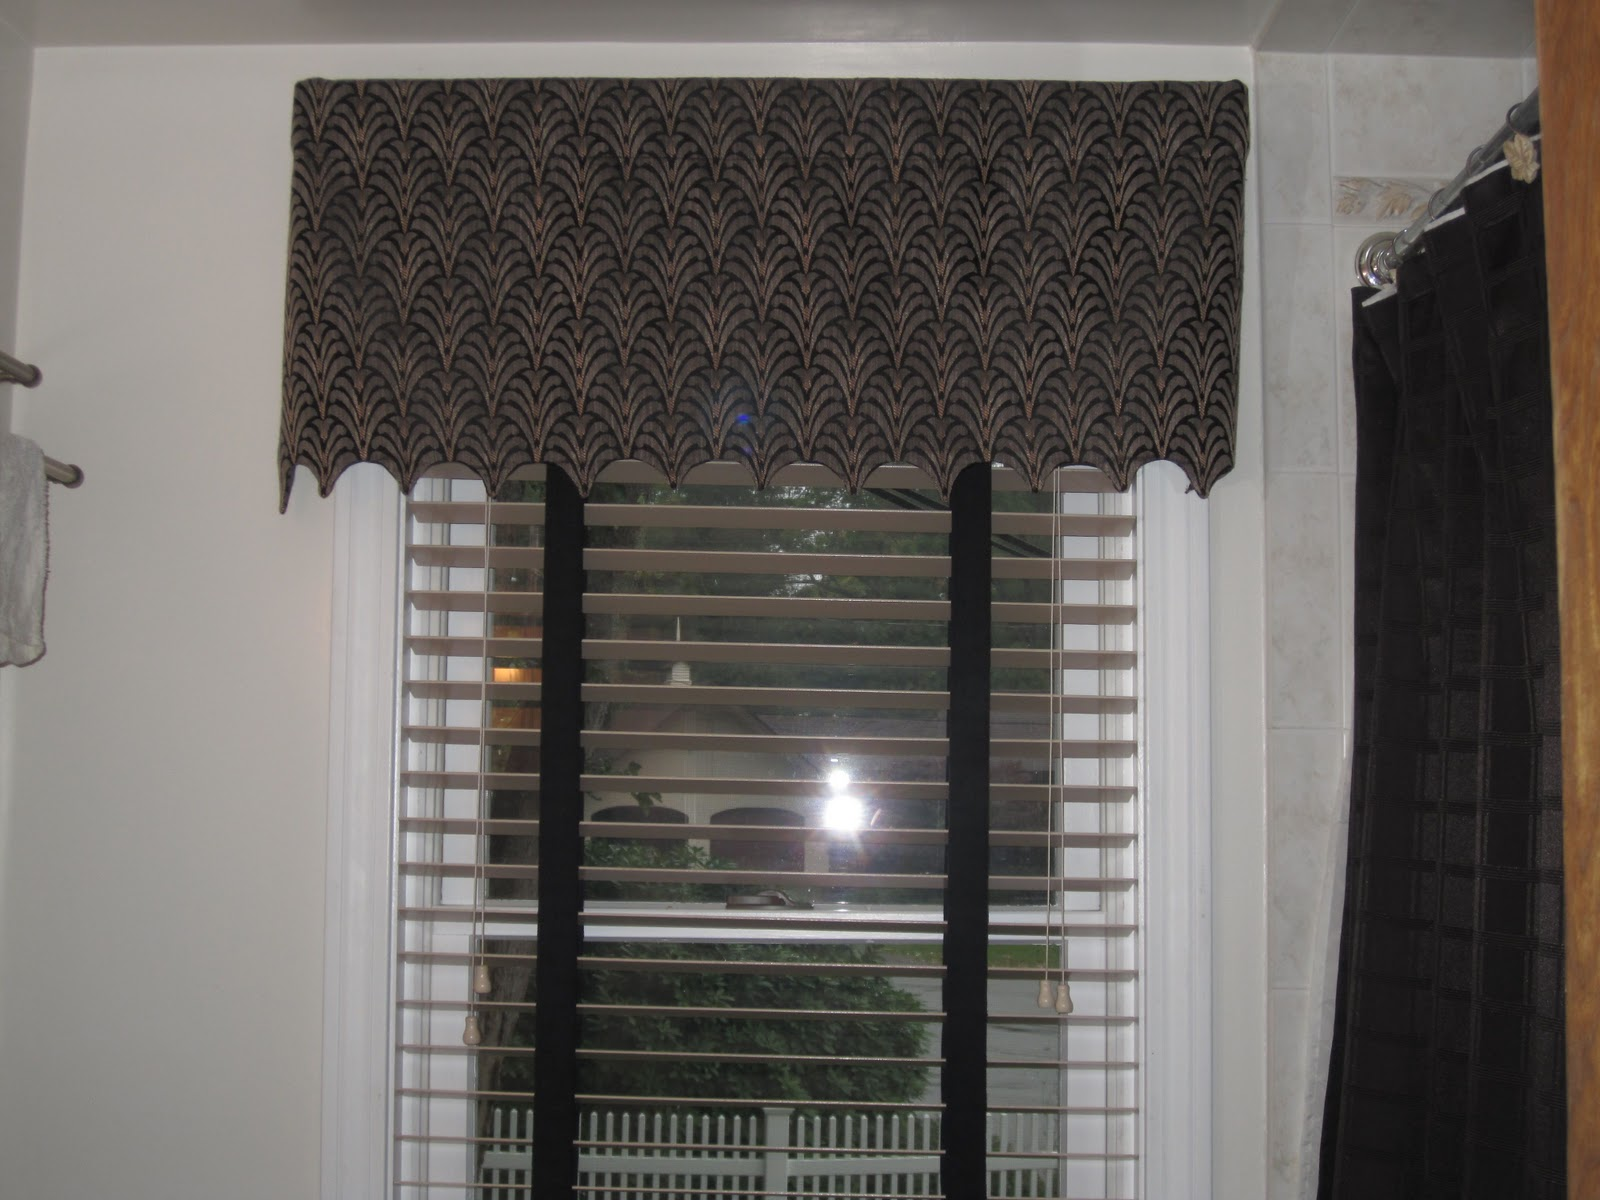 Bathroom window curtains are